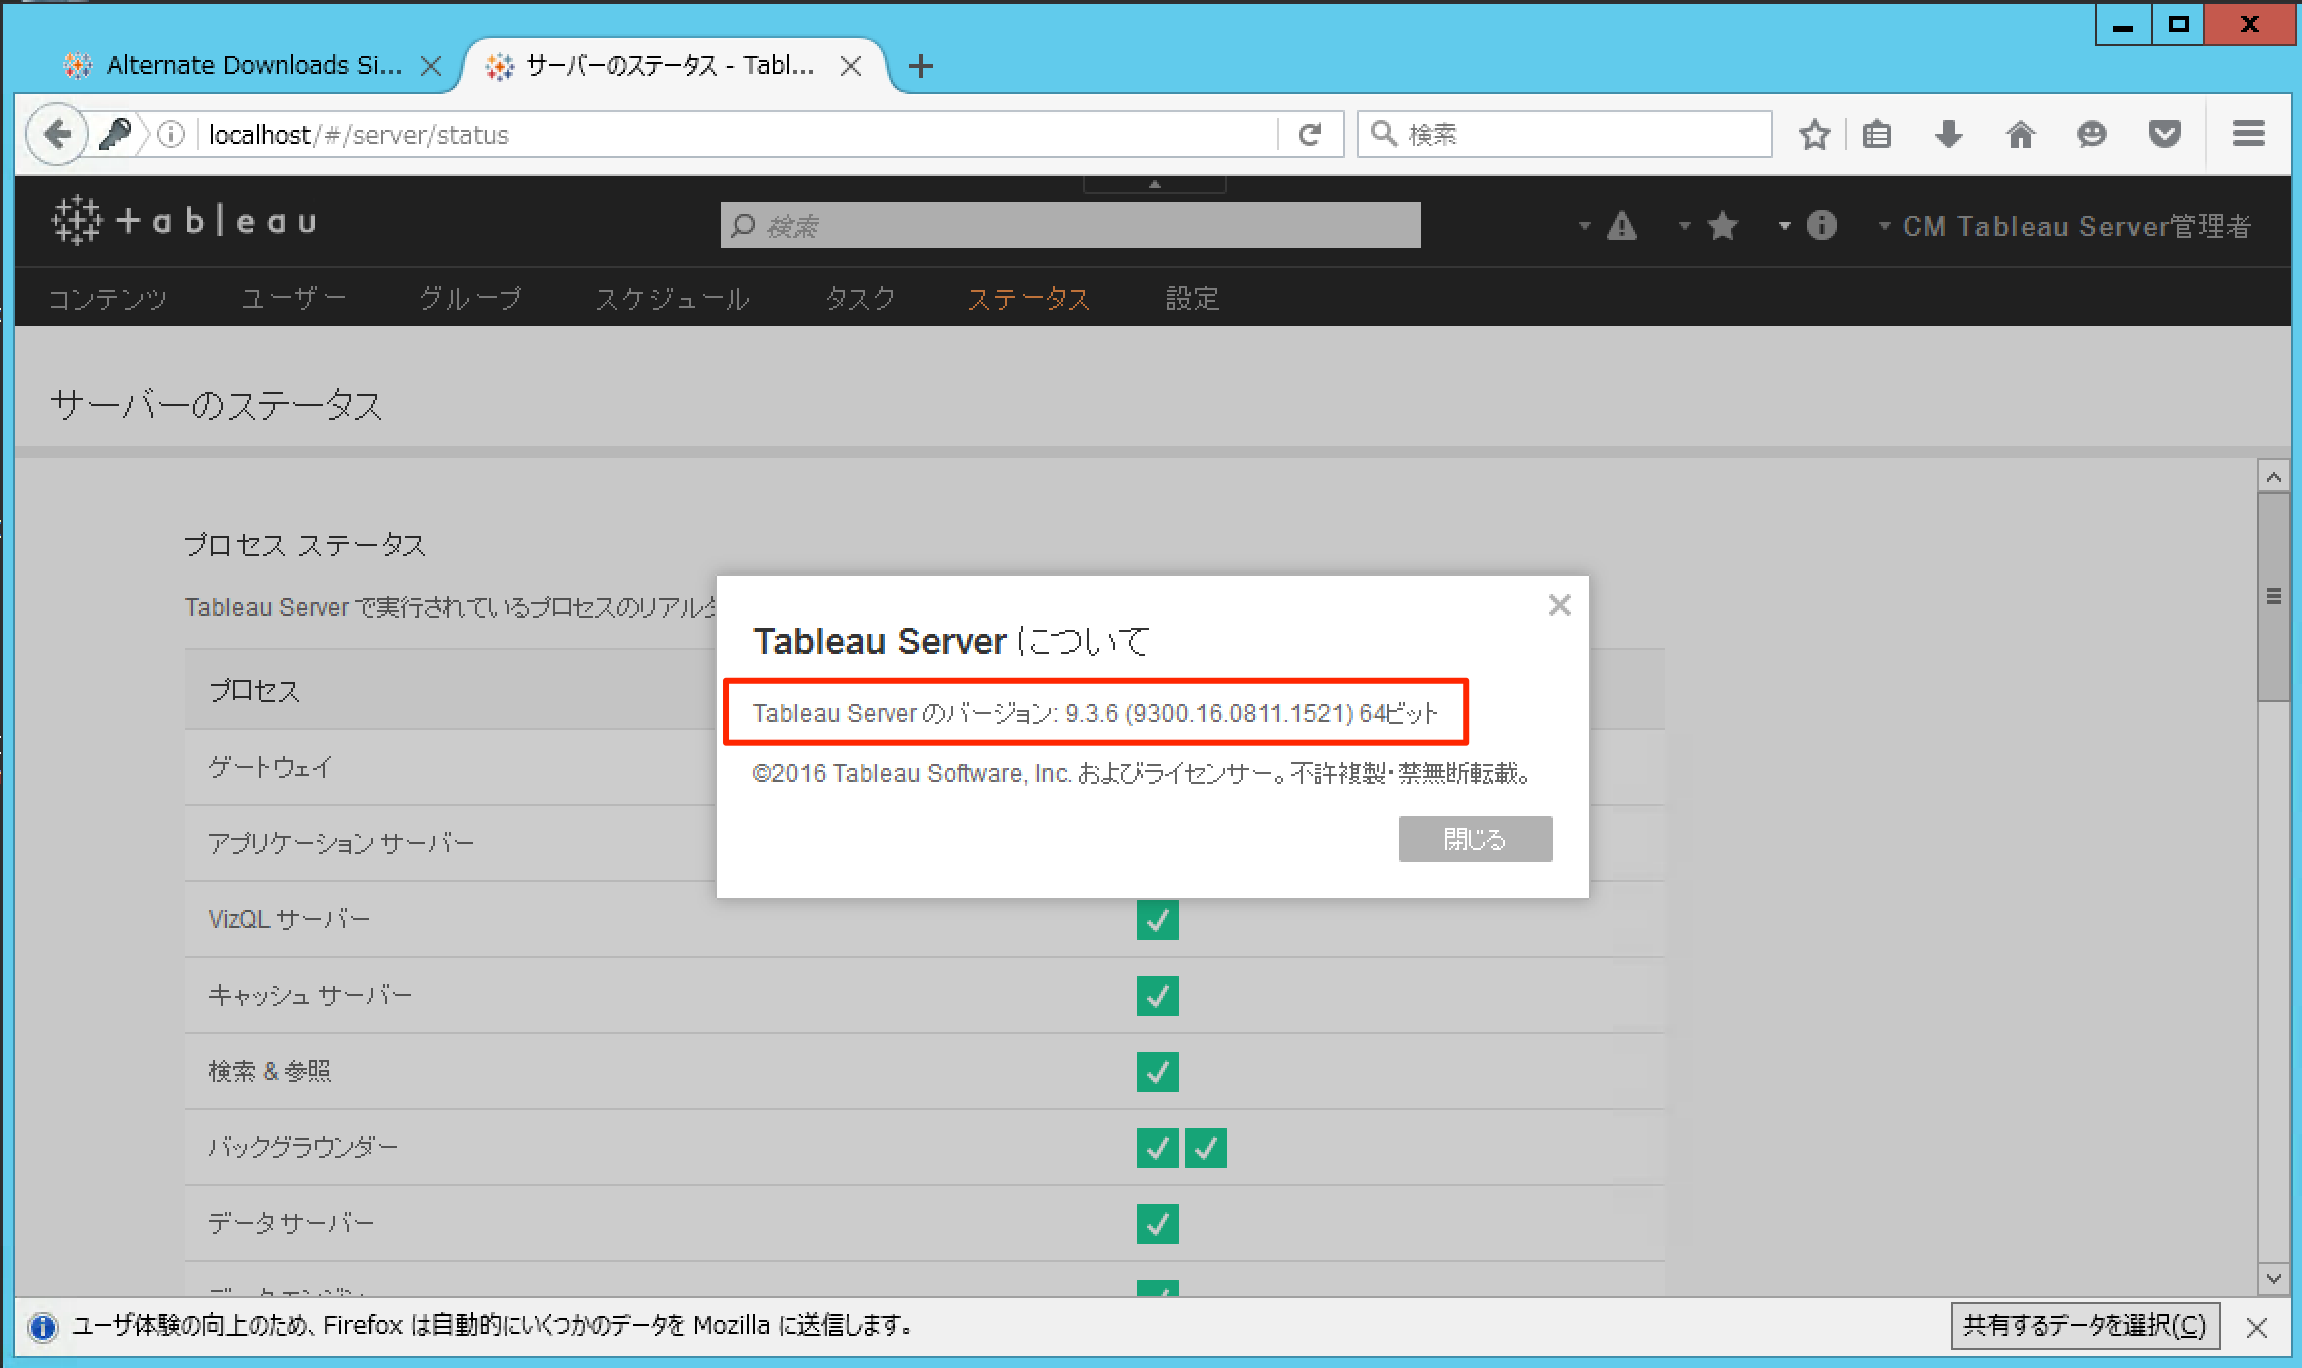 tableau-server-upgrade-without-previous-uninstall_01